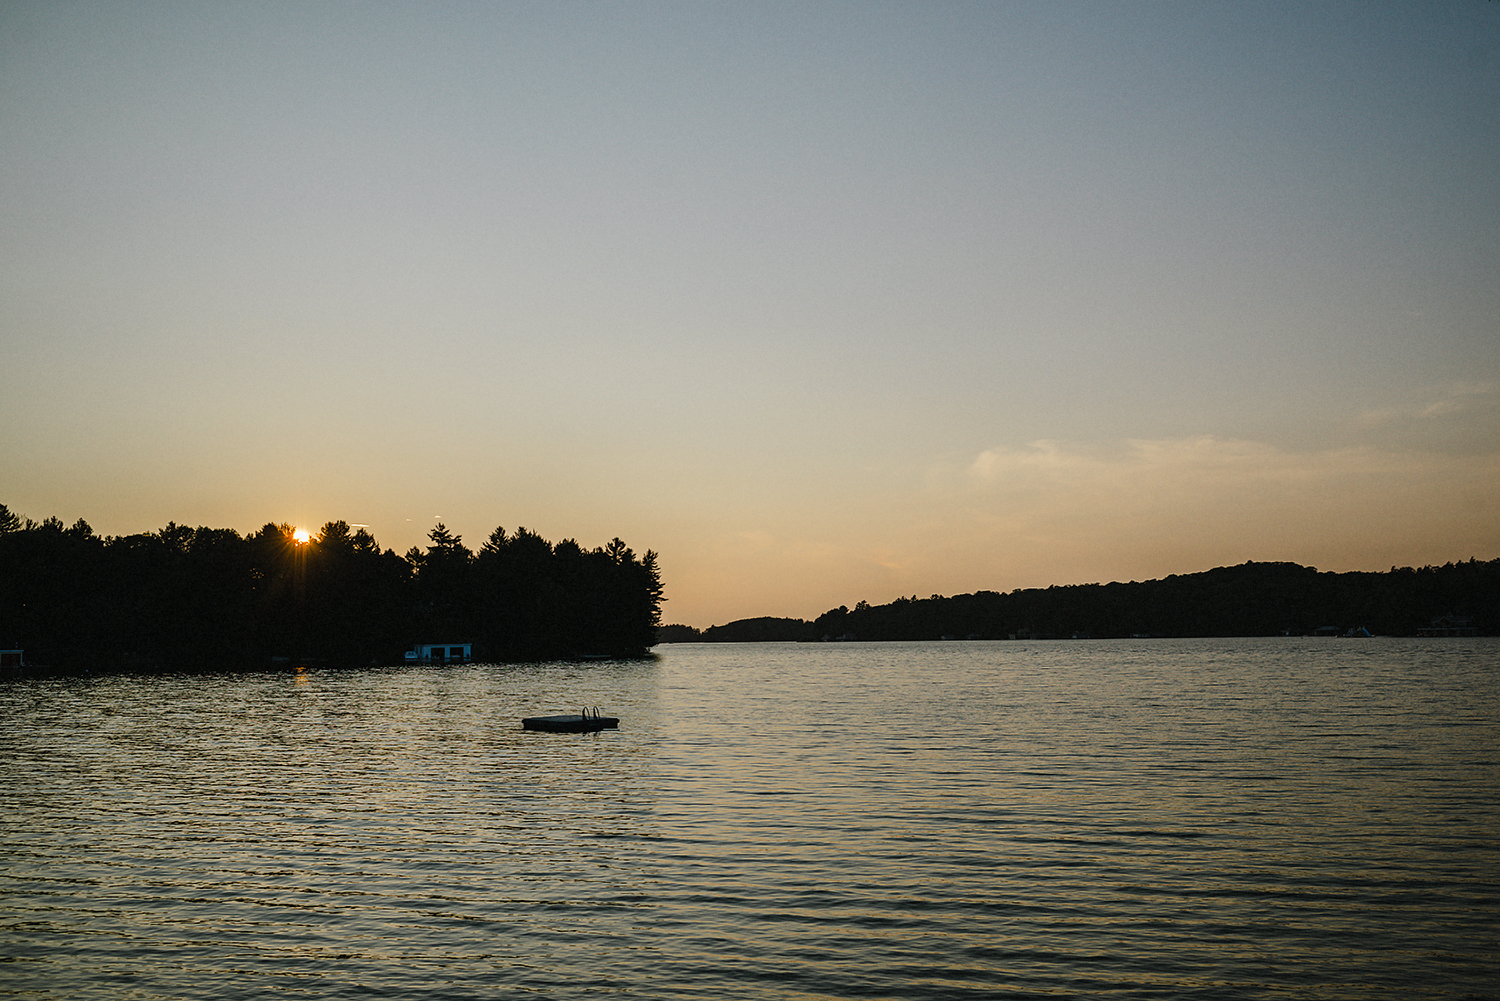 Muskoka-Cottage-Wedding-Photography-Photographer_Photojournalistic-Documentary-Wedding-Photography_Lakeside-Ceremony-Sunset-Detail.jpg